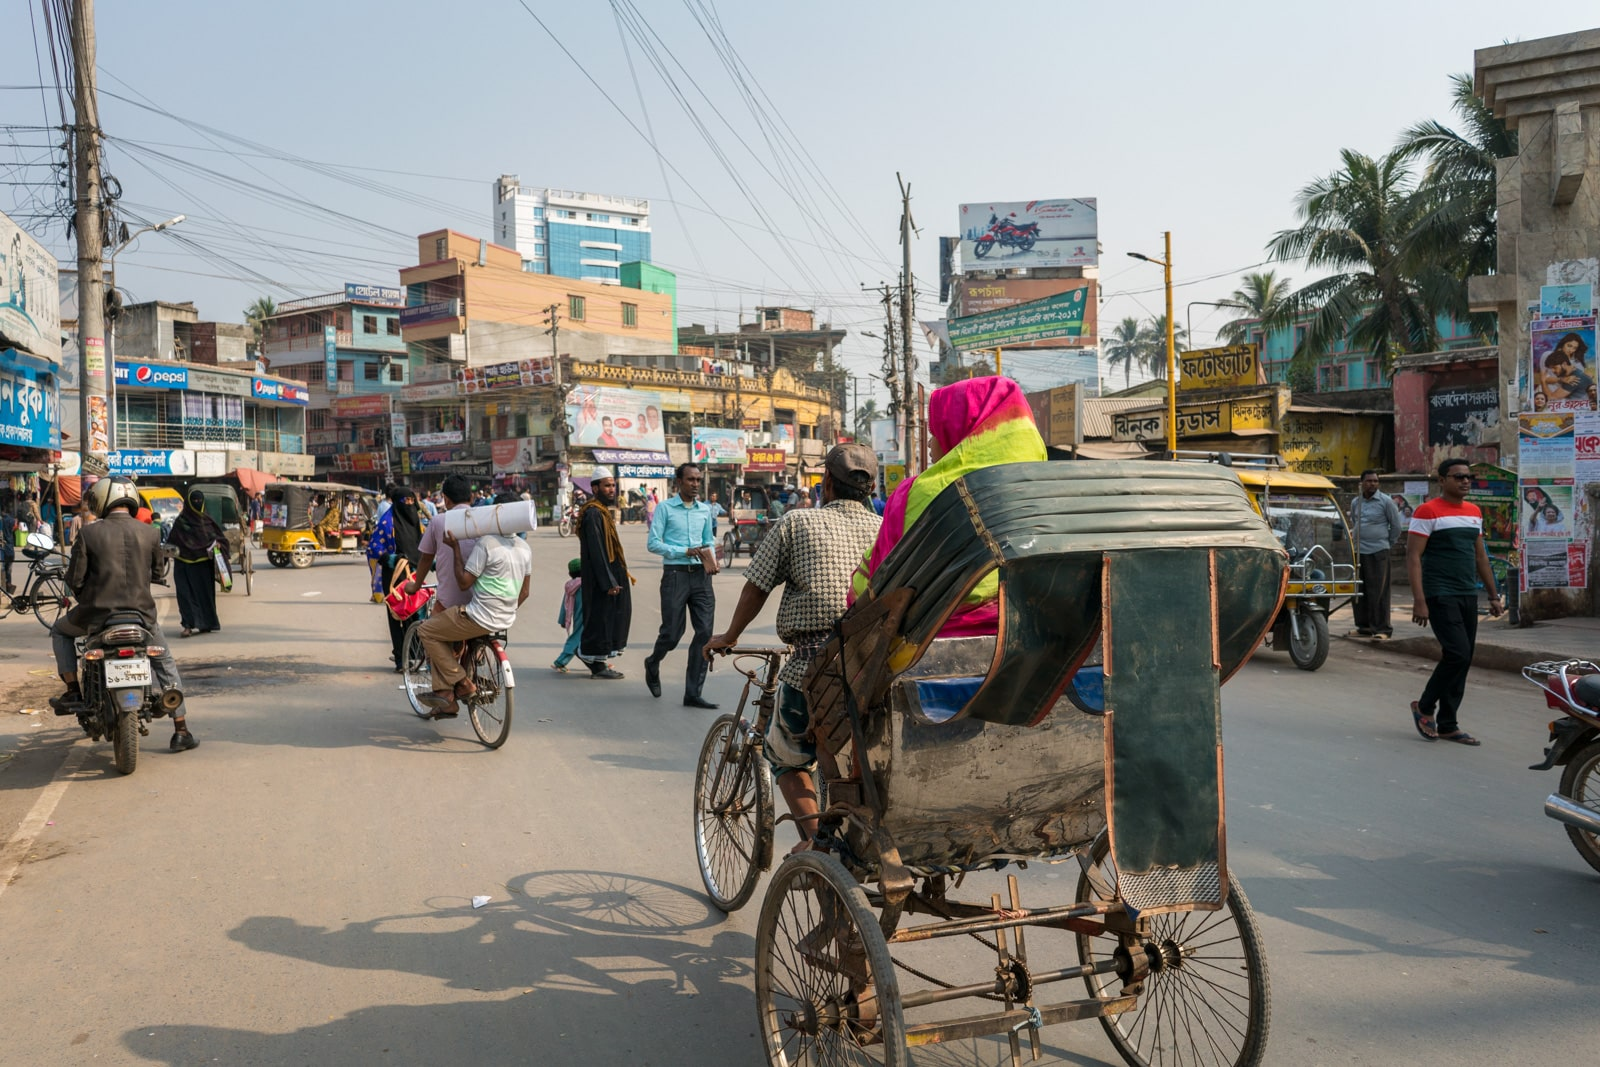 Crossing the India - Bangladesh border at Petrapole and Benapole - Jessore streets - Lost With Purpose travel blog